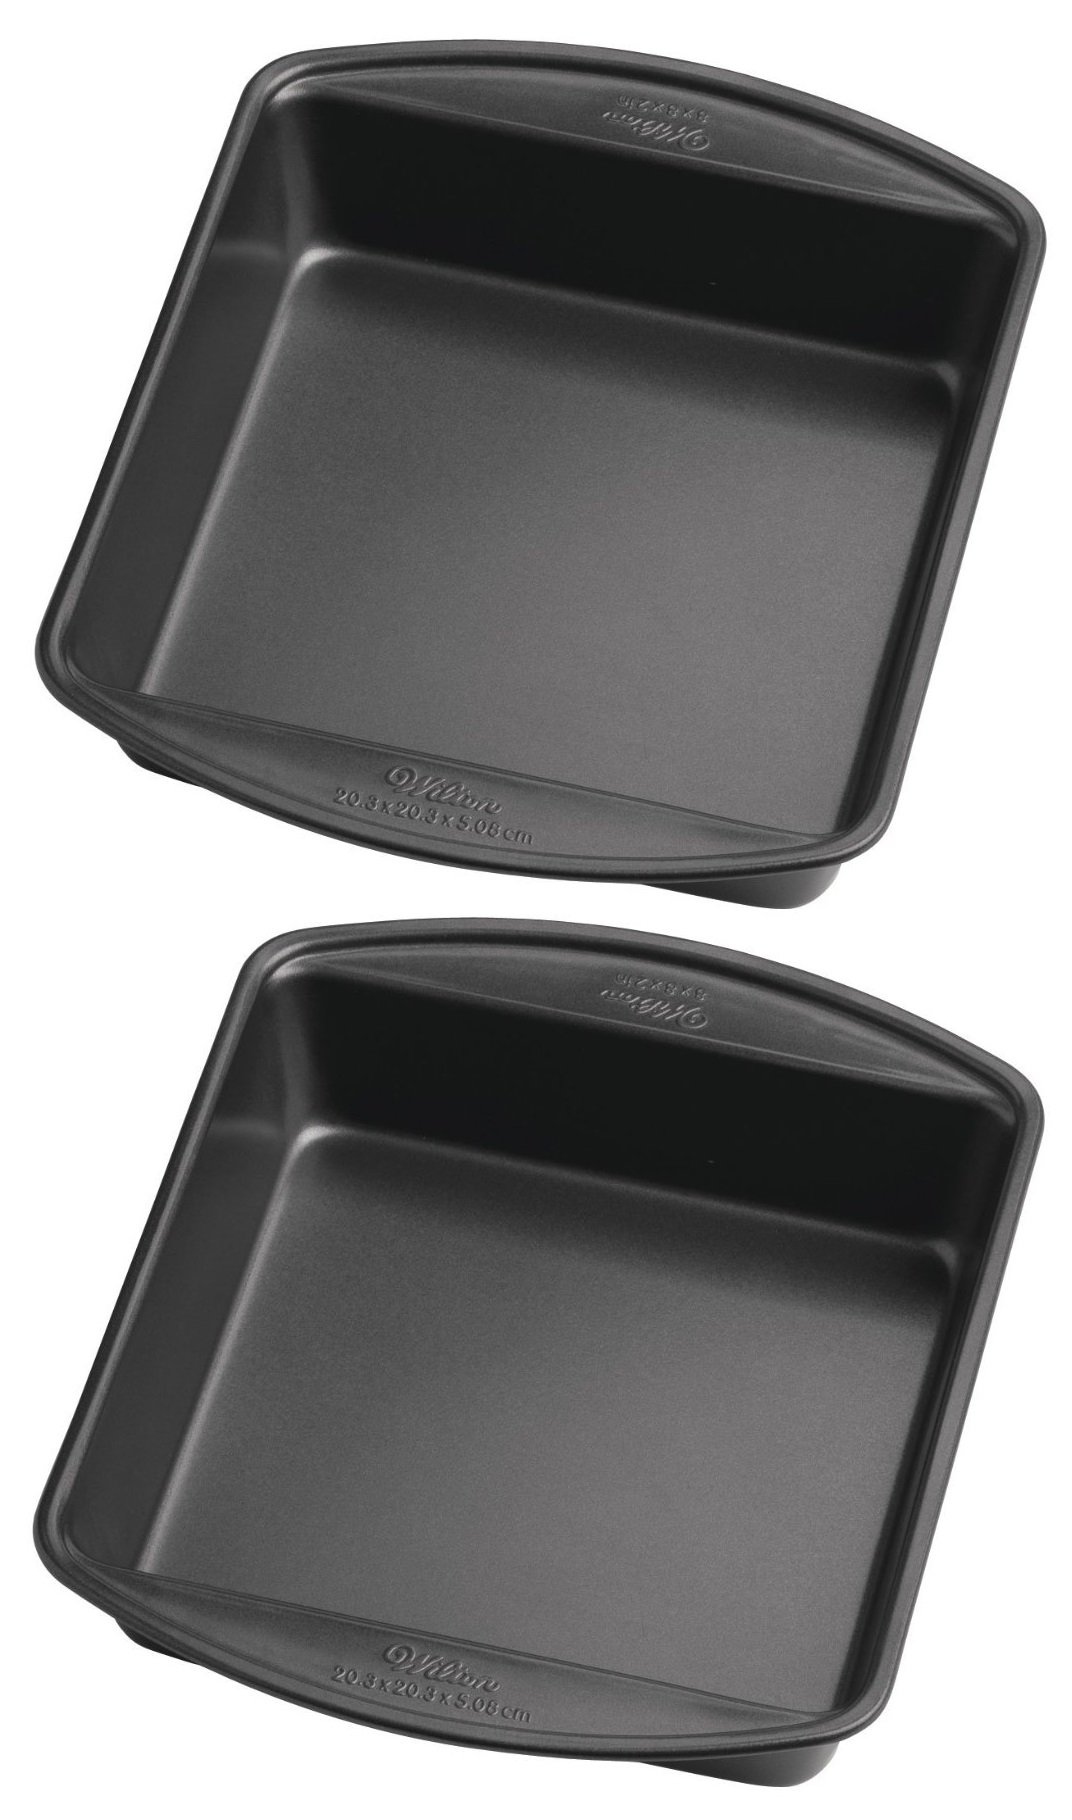 Wilton Perfect Results 8-Inch Square Cake Pan, Pack of 2 Pans by Wilton